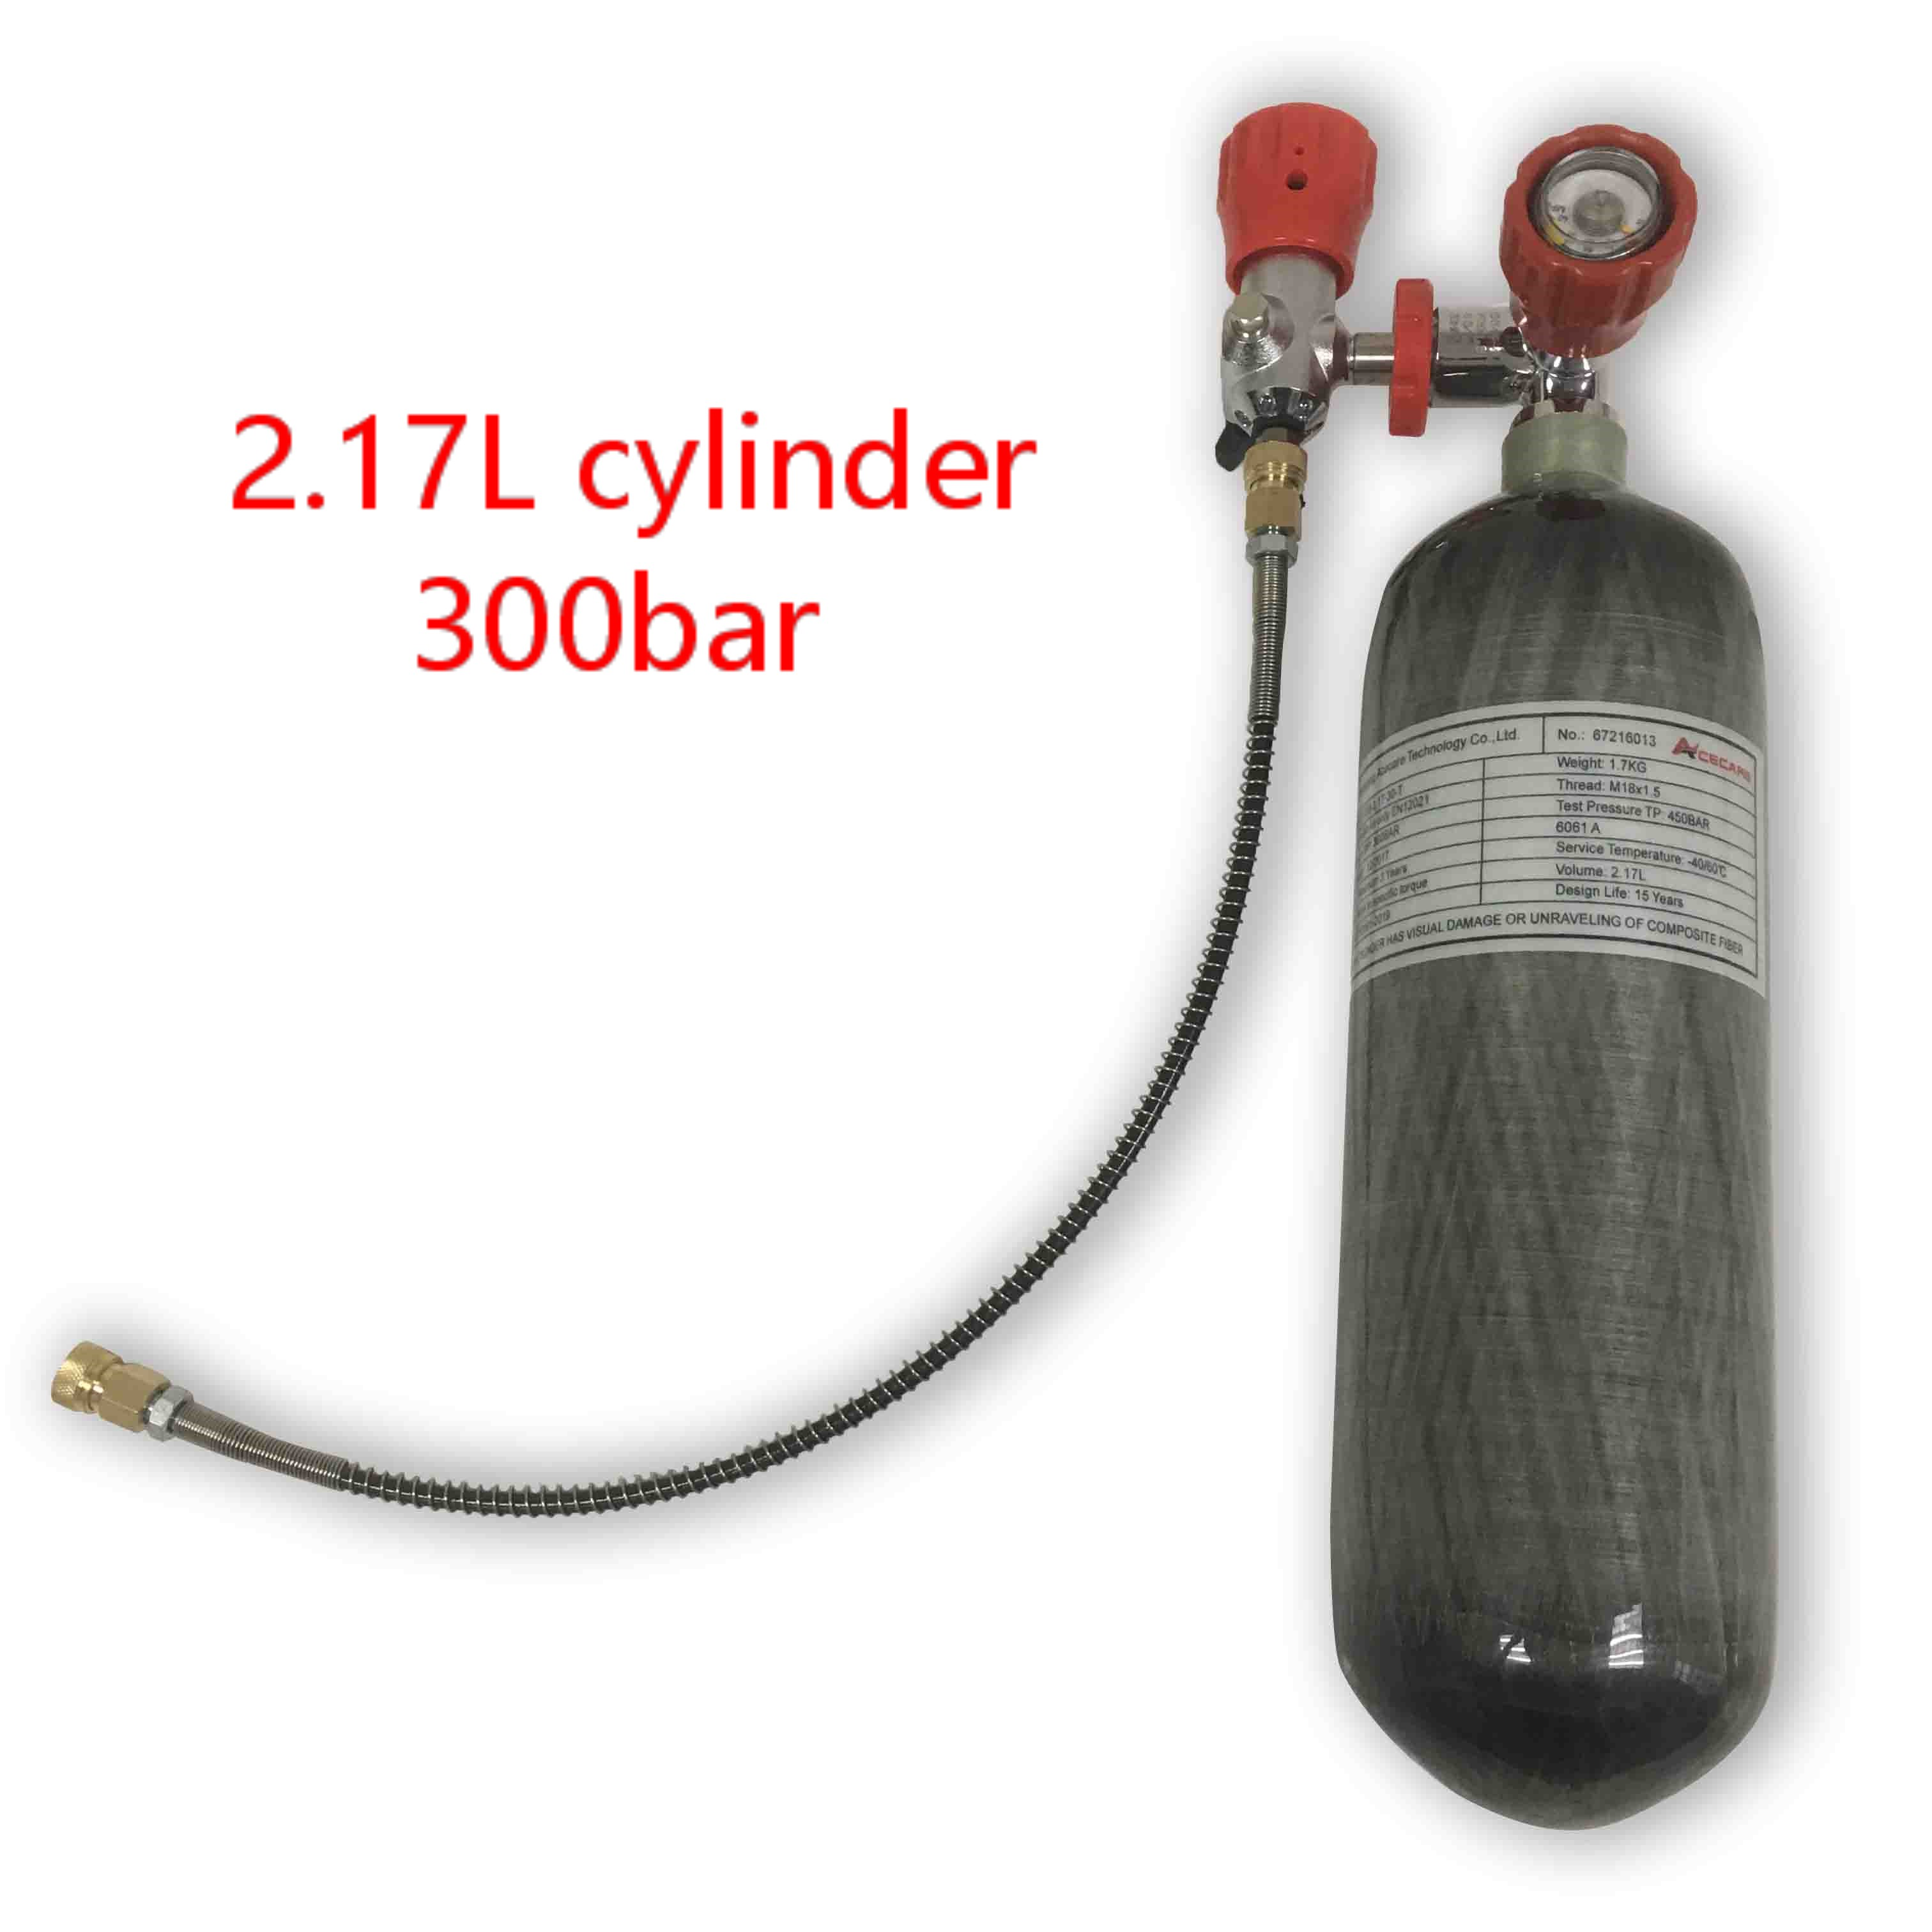 AC1217101 Cylinder Scuba Pcp Air Rifle 2.17L 300Bar Carbon Fiber Paintball Tank Compressed Air Gun Pcp Airforce Condor Acecare